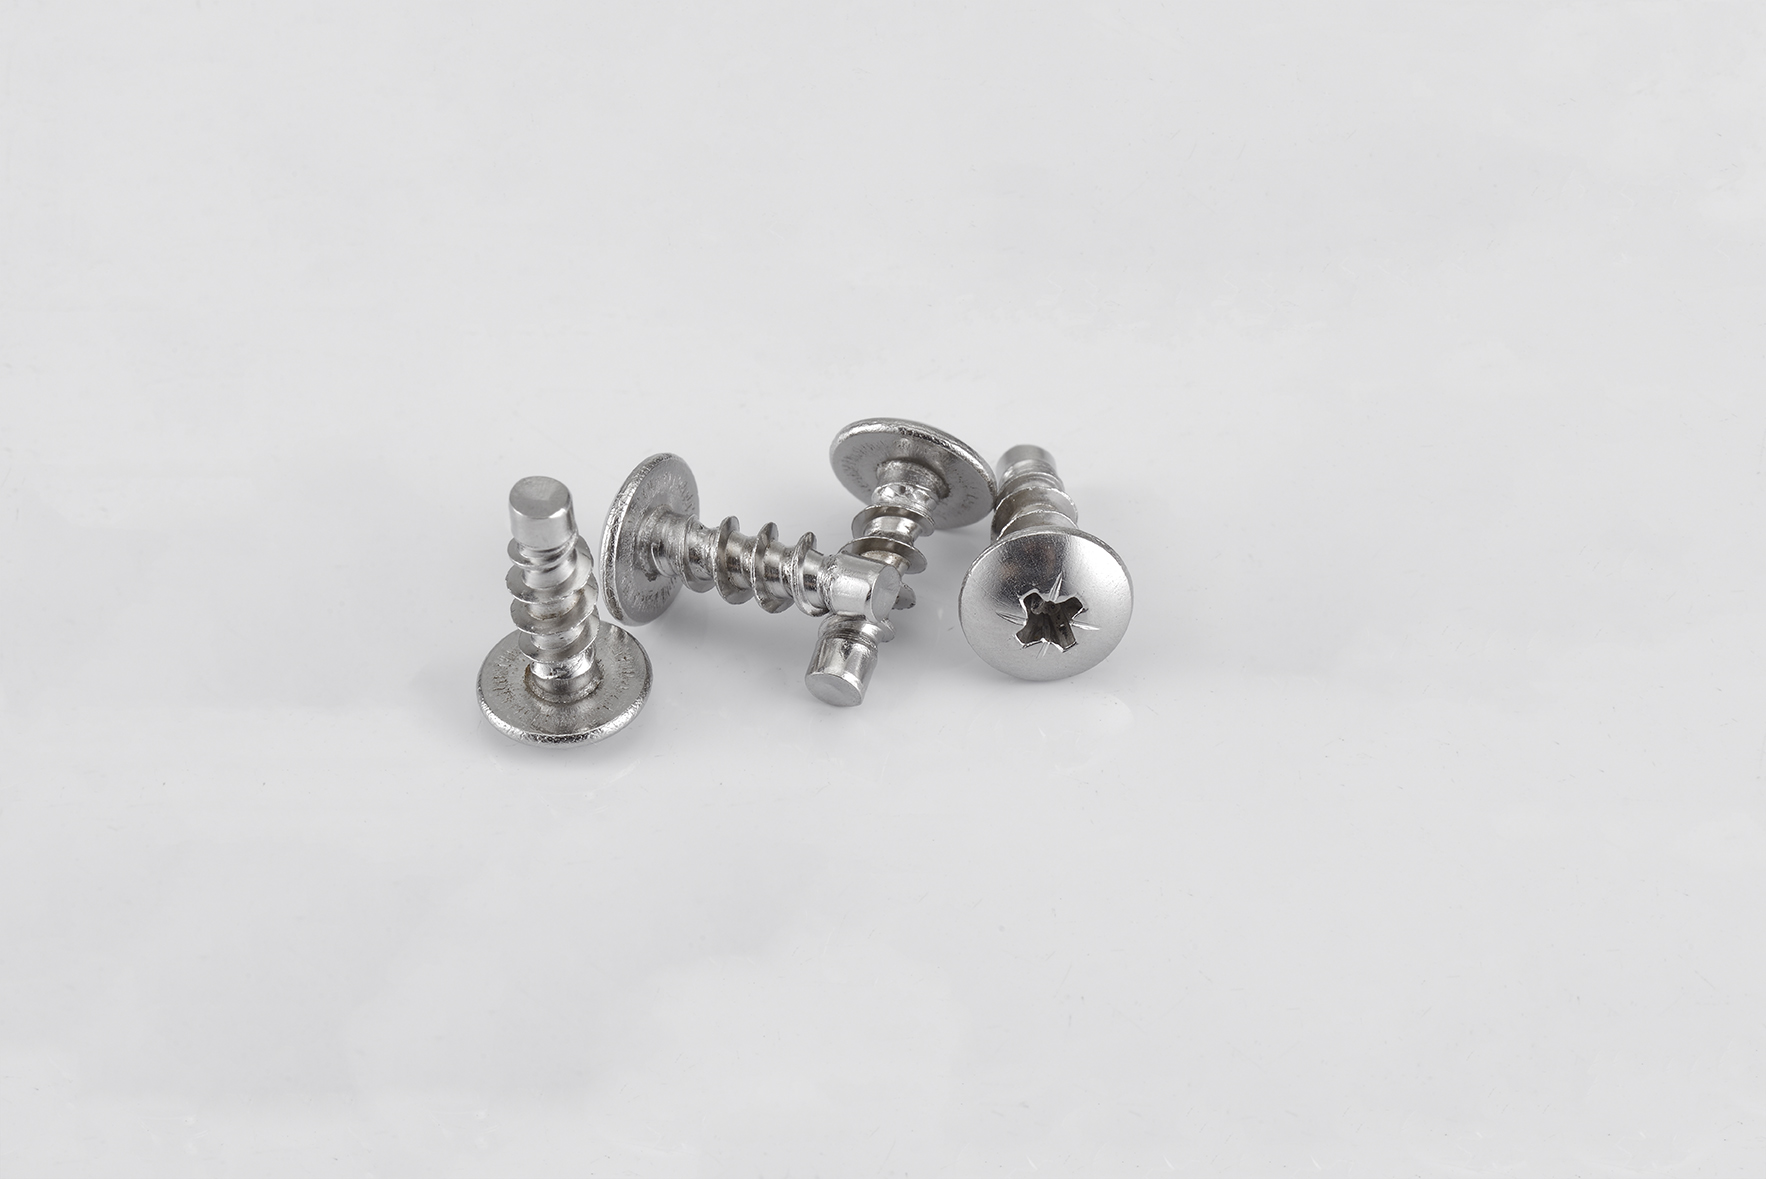 Non standard customized screws